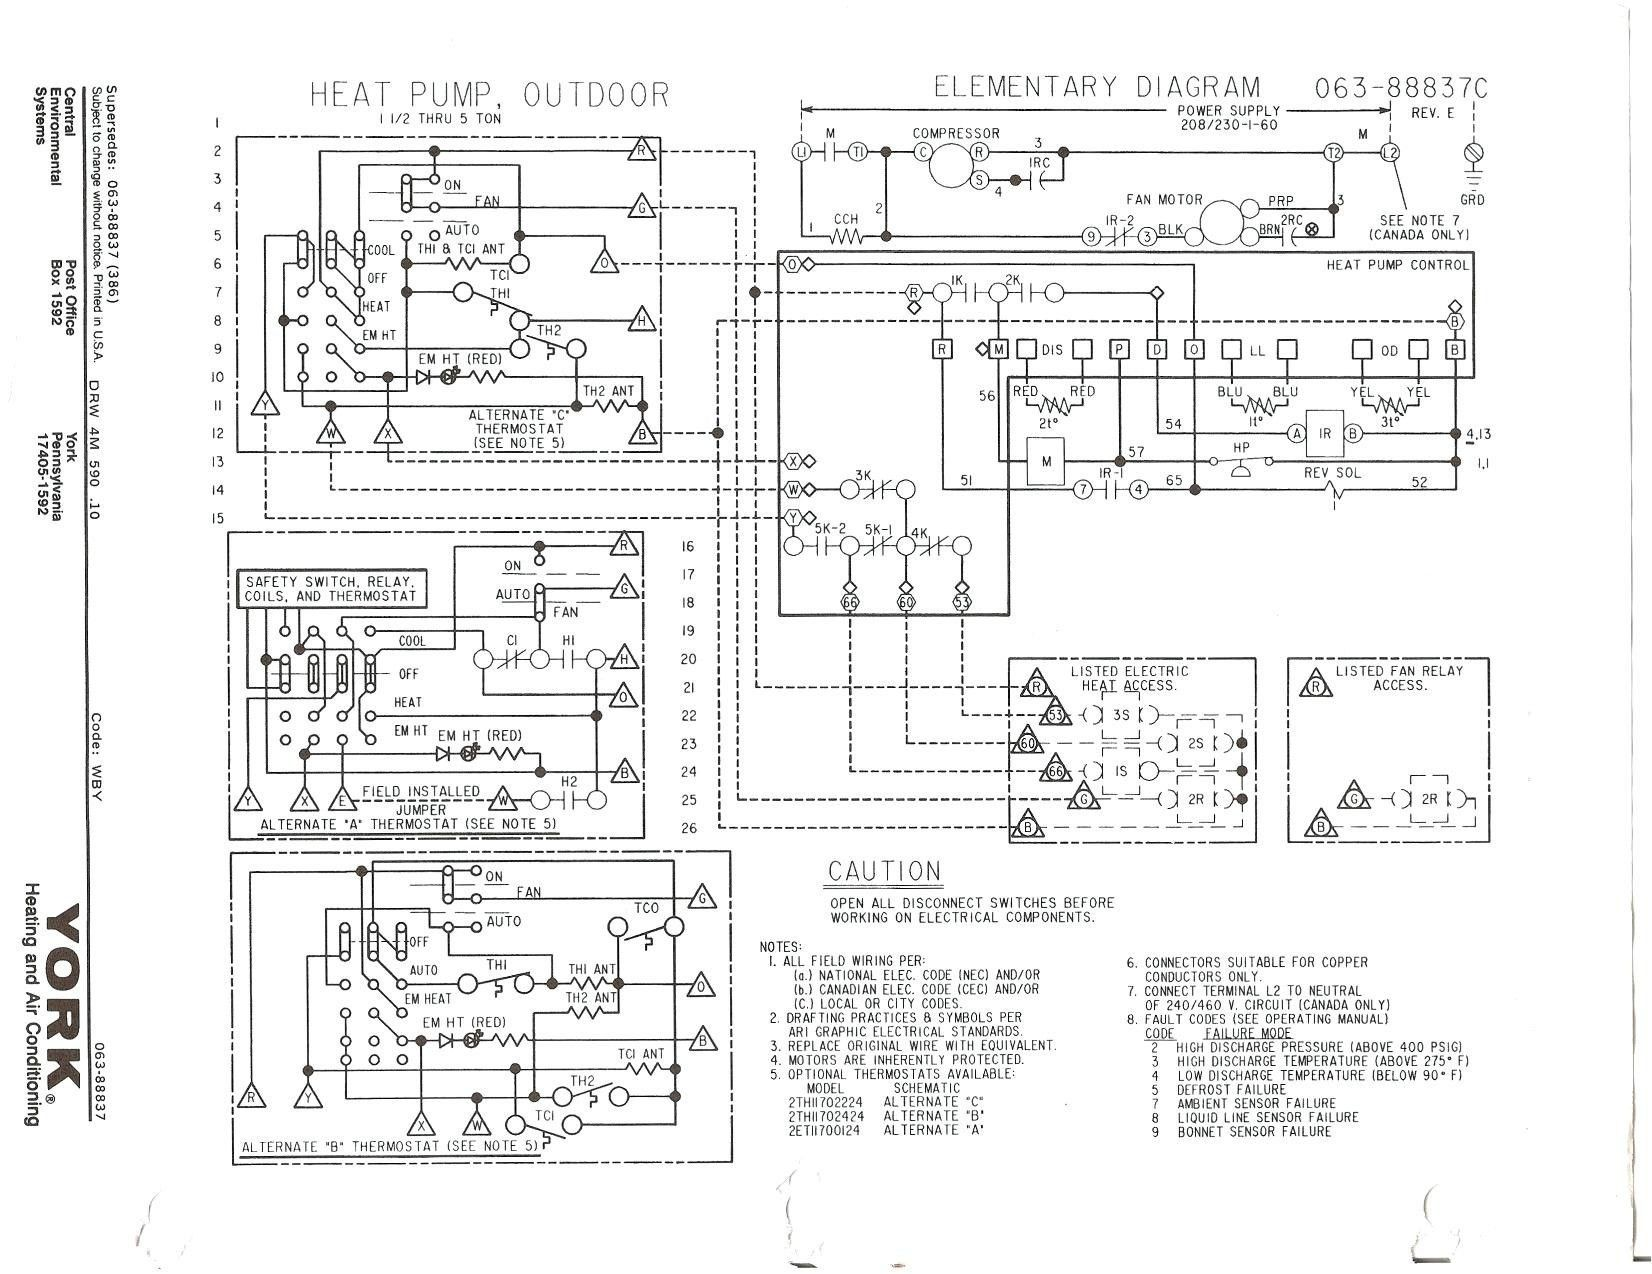 New Trane Electric Furnace Wiring Diagram | Pallet shed, Attic  organization, Window coveringsPinterest